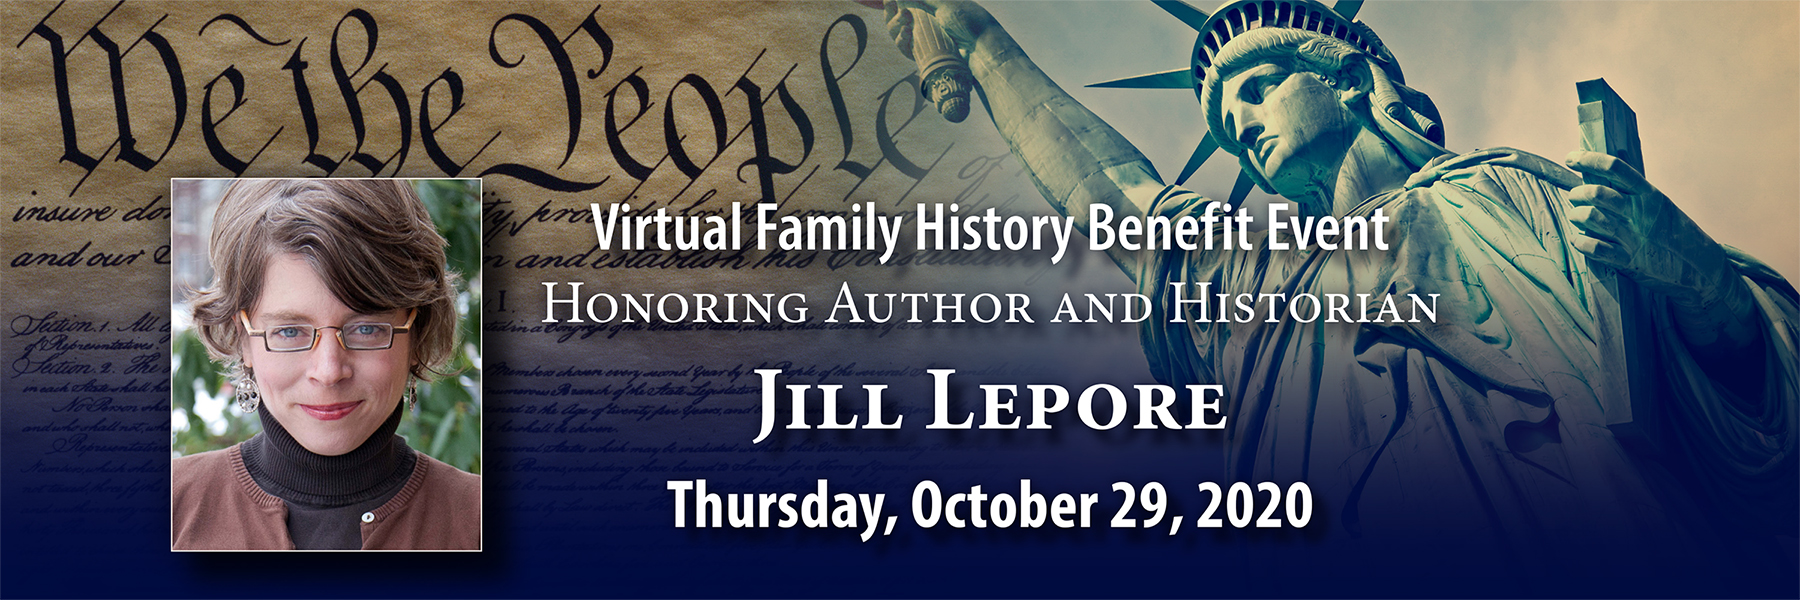 Register now for our virtual fall family history benefit event featuring Jill Lepore